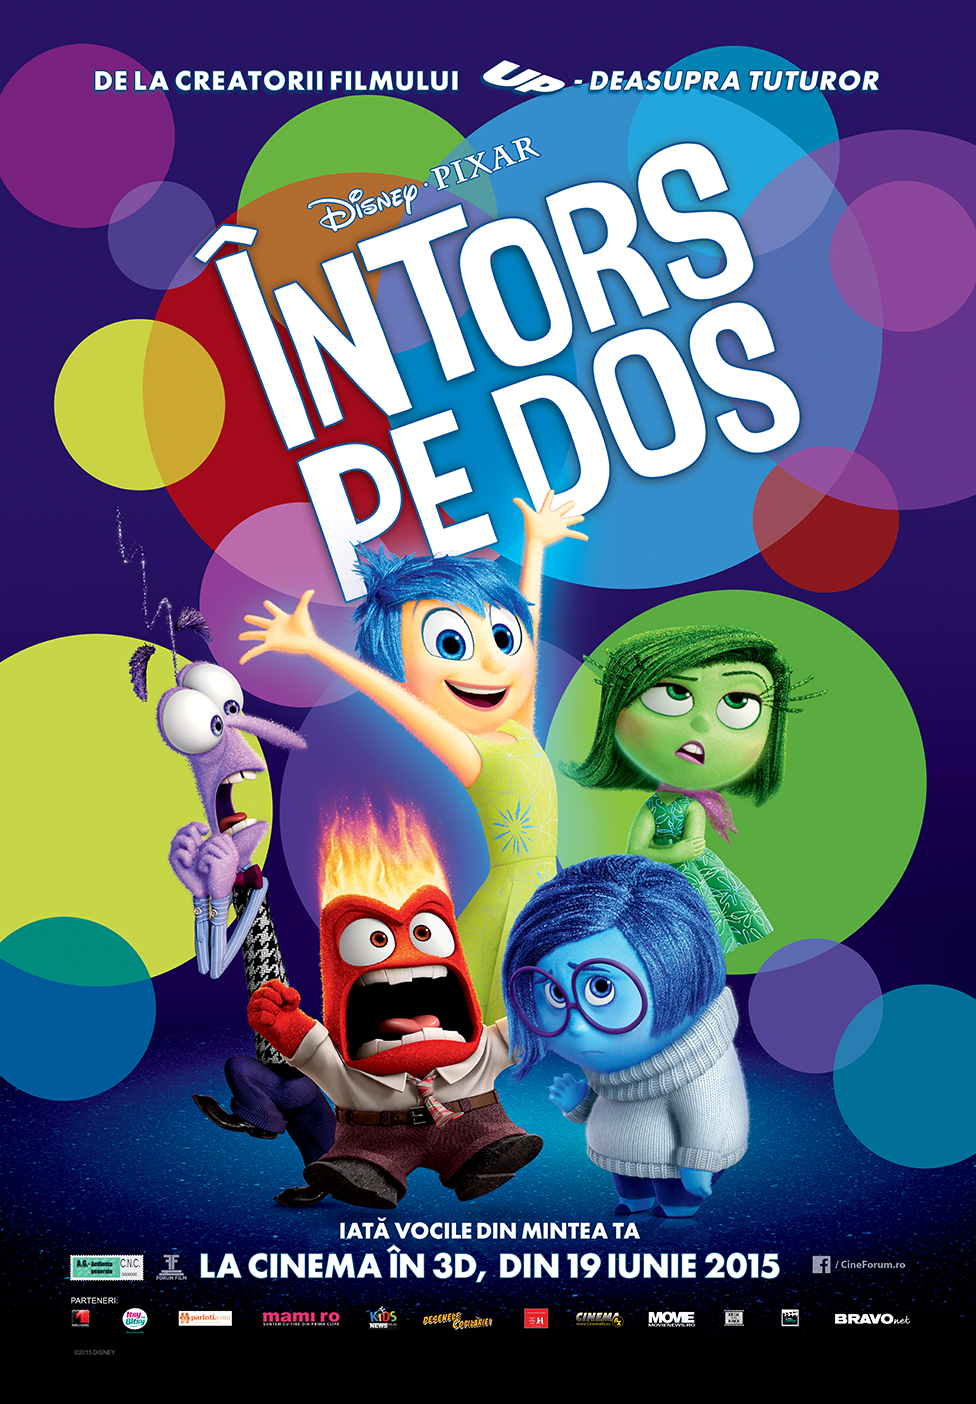 Intors pe dos – 3D Dublat / Inside Out – 3D Dubbed